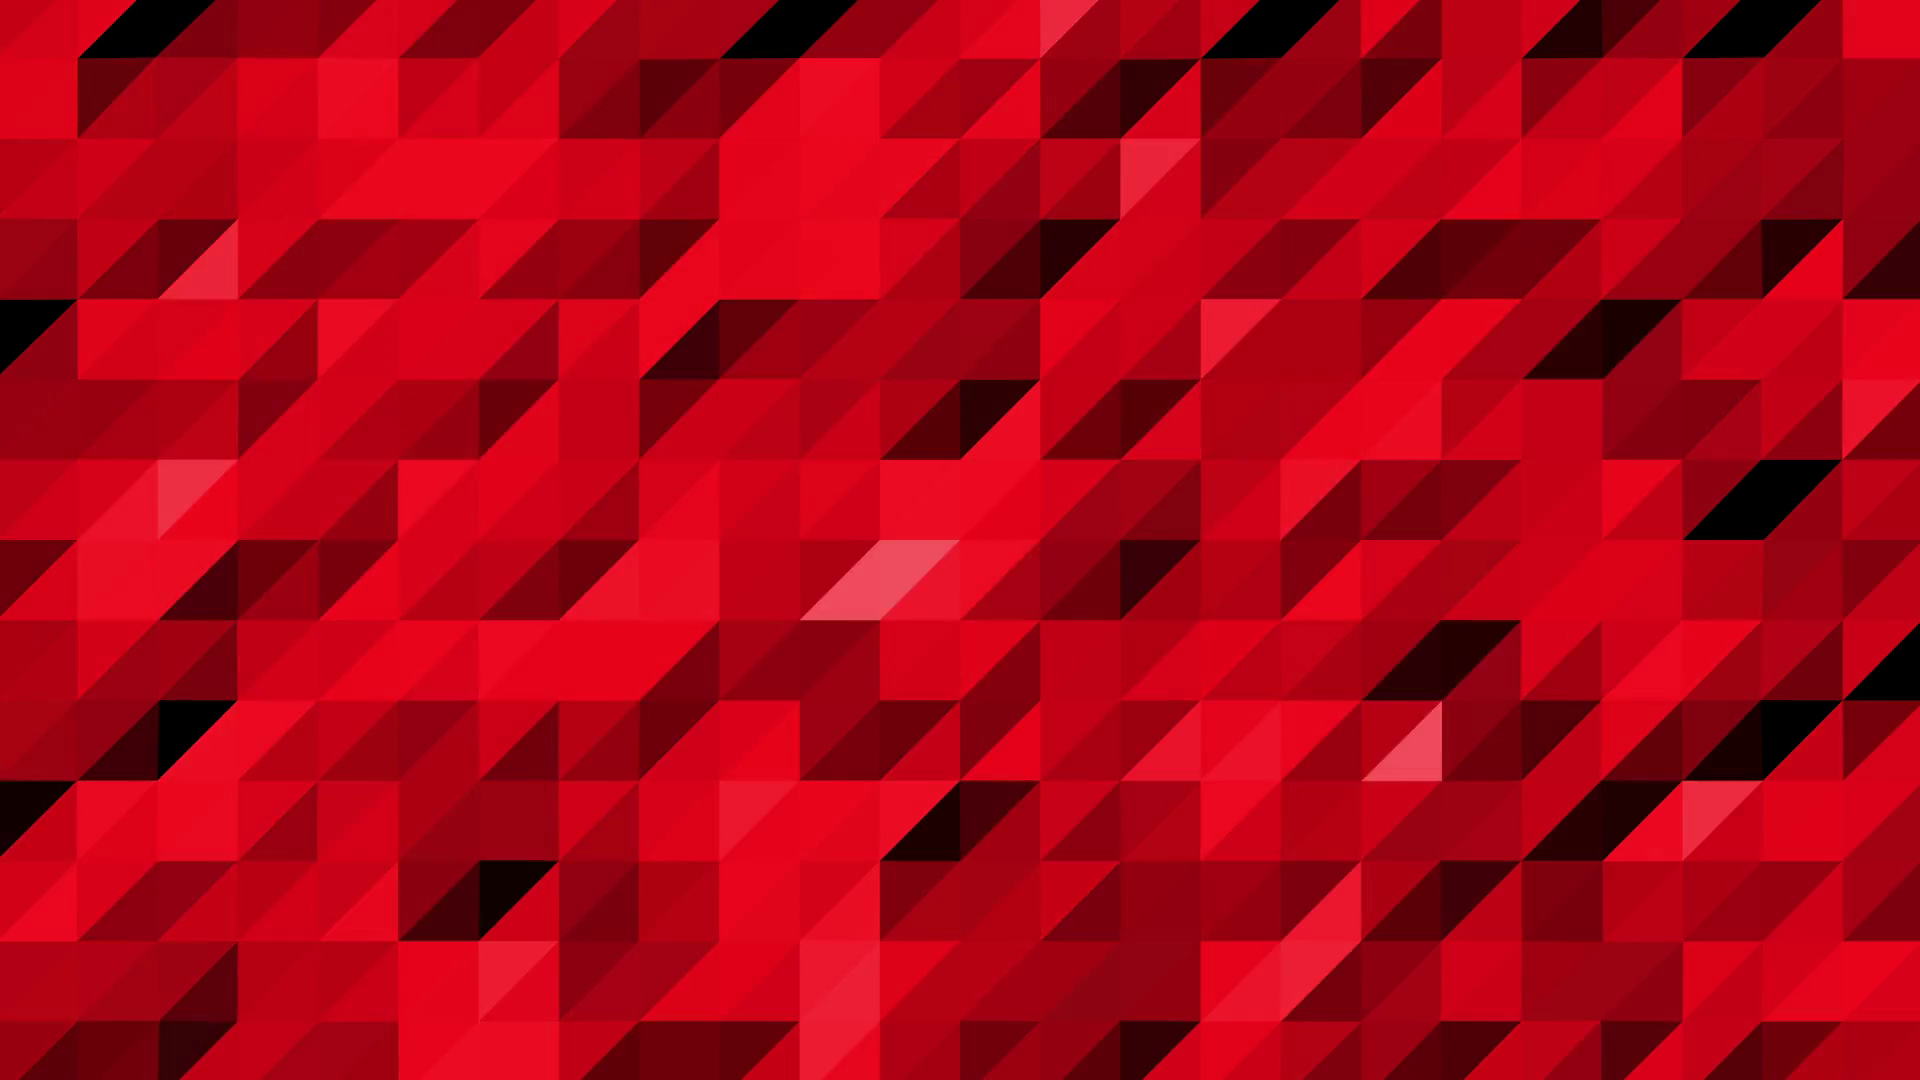 Abstract Polygonal Geometric Surface Low poly motion background 1920x1080